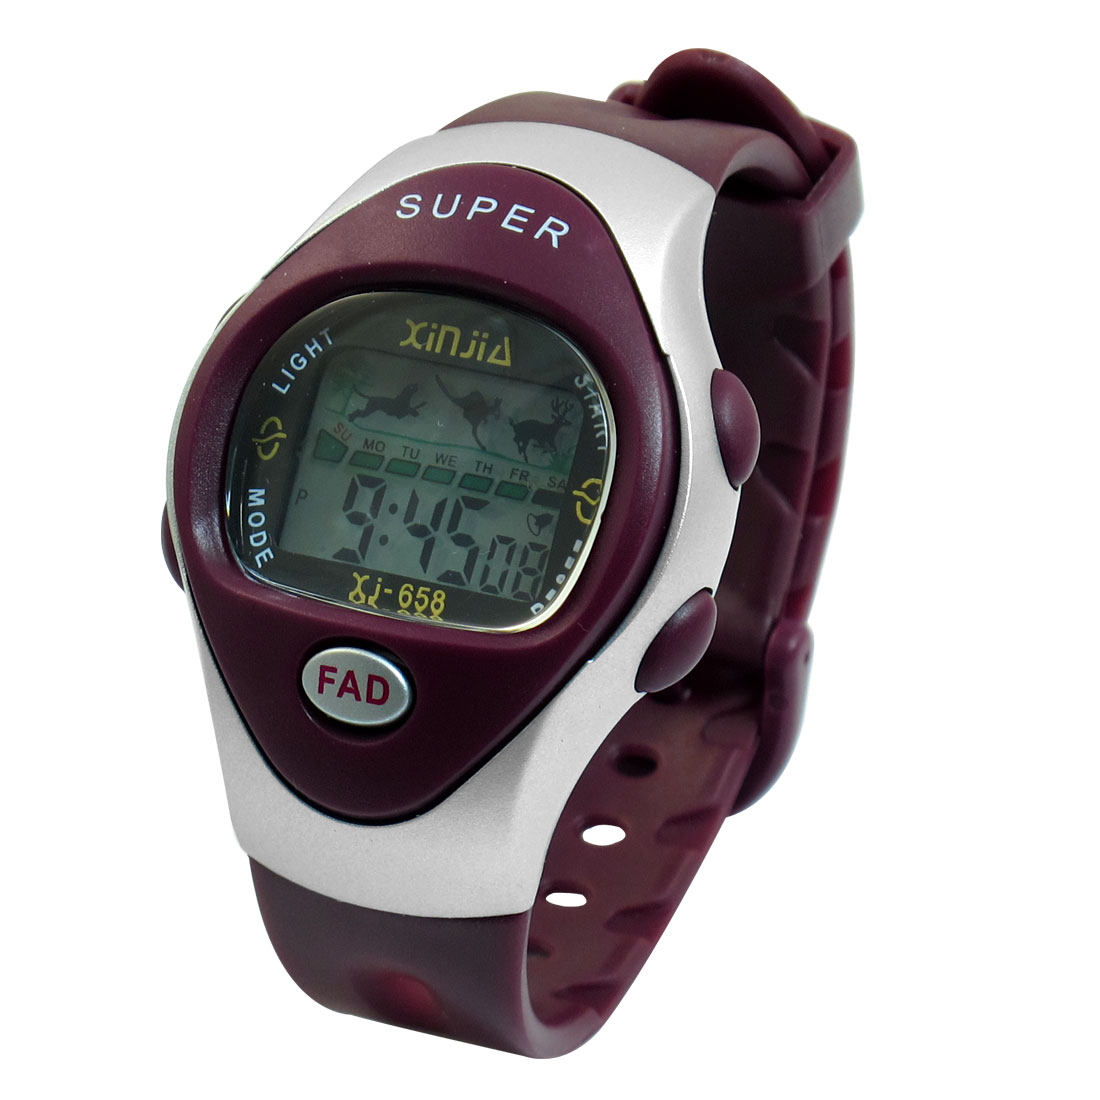 Woman 11 Holes LCD Display Adjstable Band Stopwatch Alarm Sport Watch Burgundy